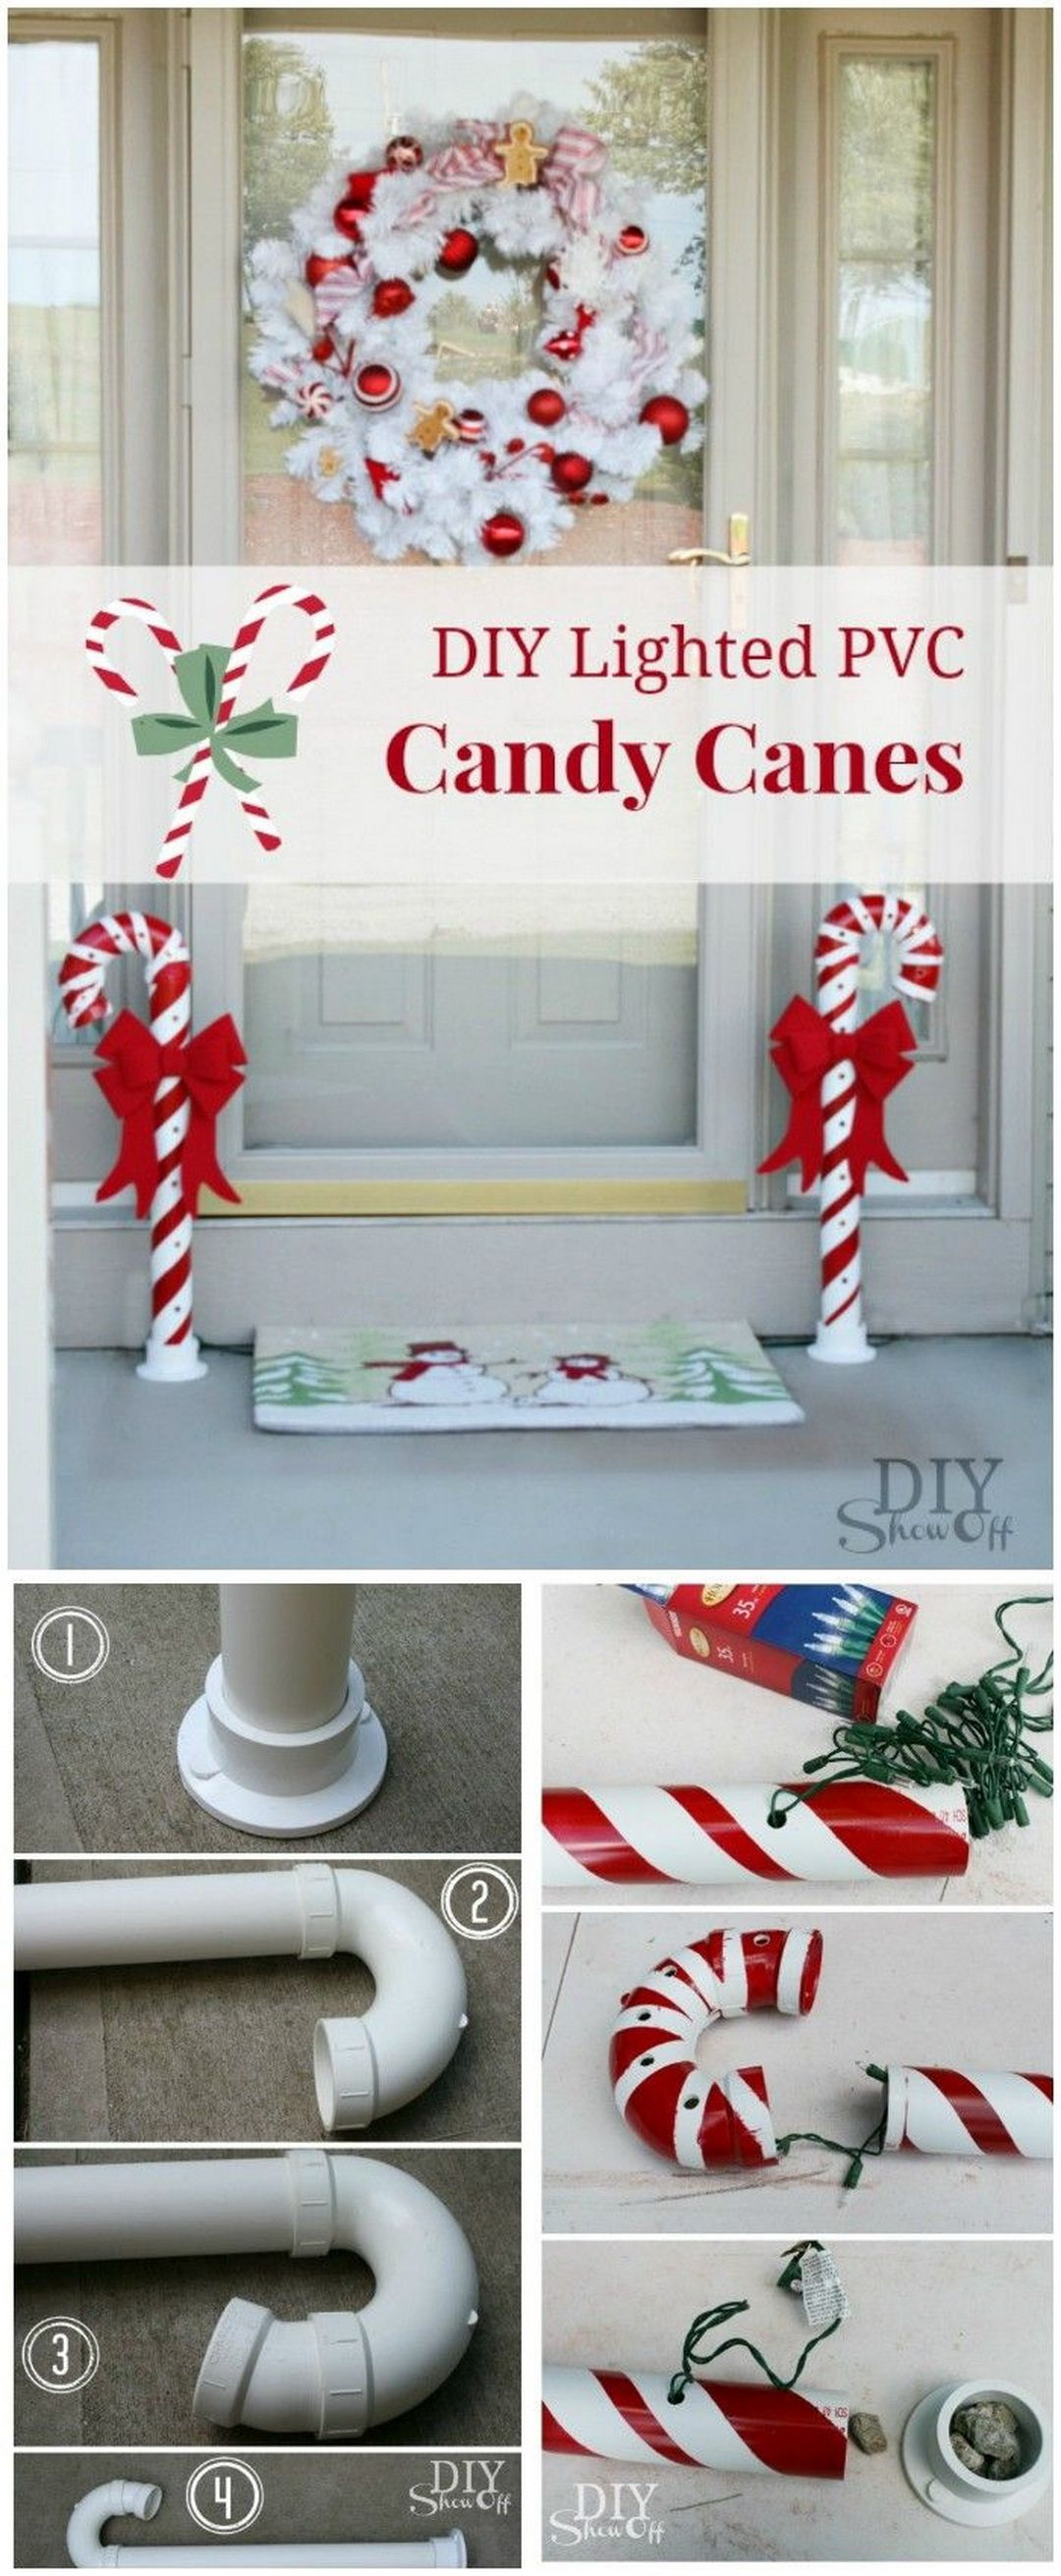 How To Make A Lighted Pvc Candy Cane Decoration Christmas Decorations Diy Outdoor Christmas Decor Diy Outdoor Christmas Diy